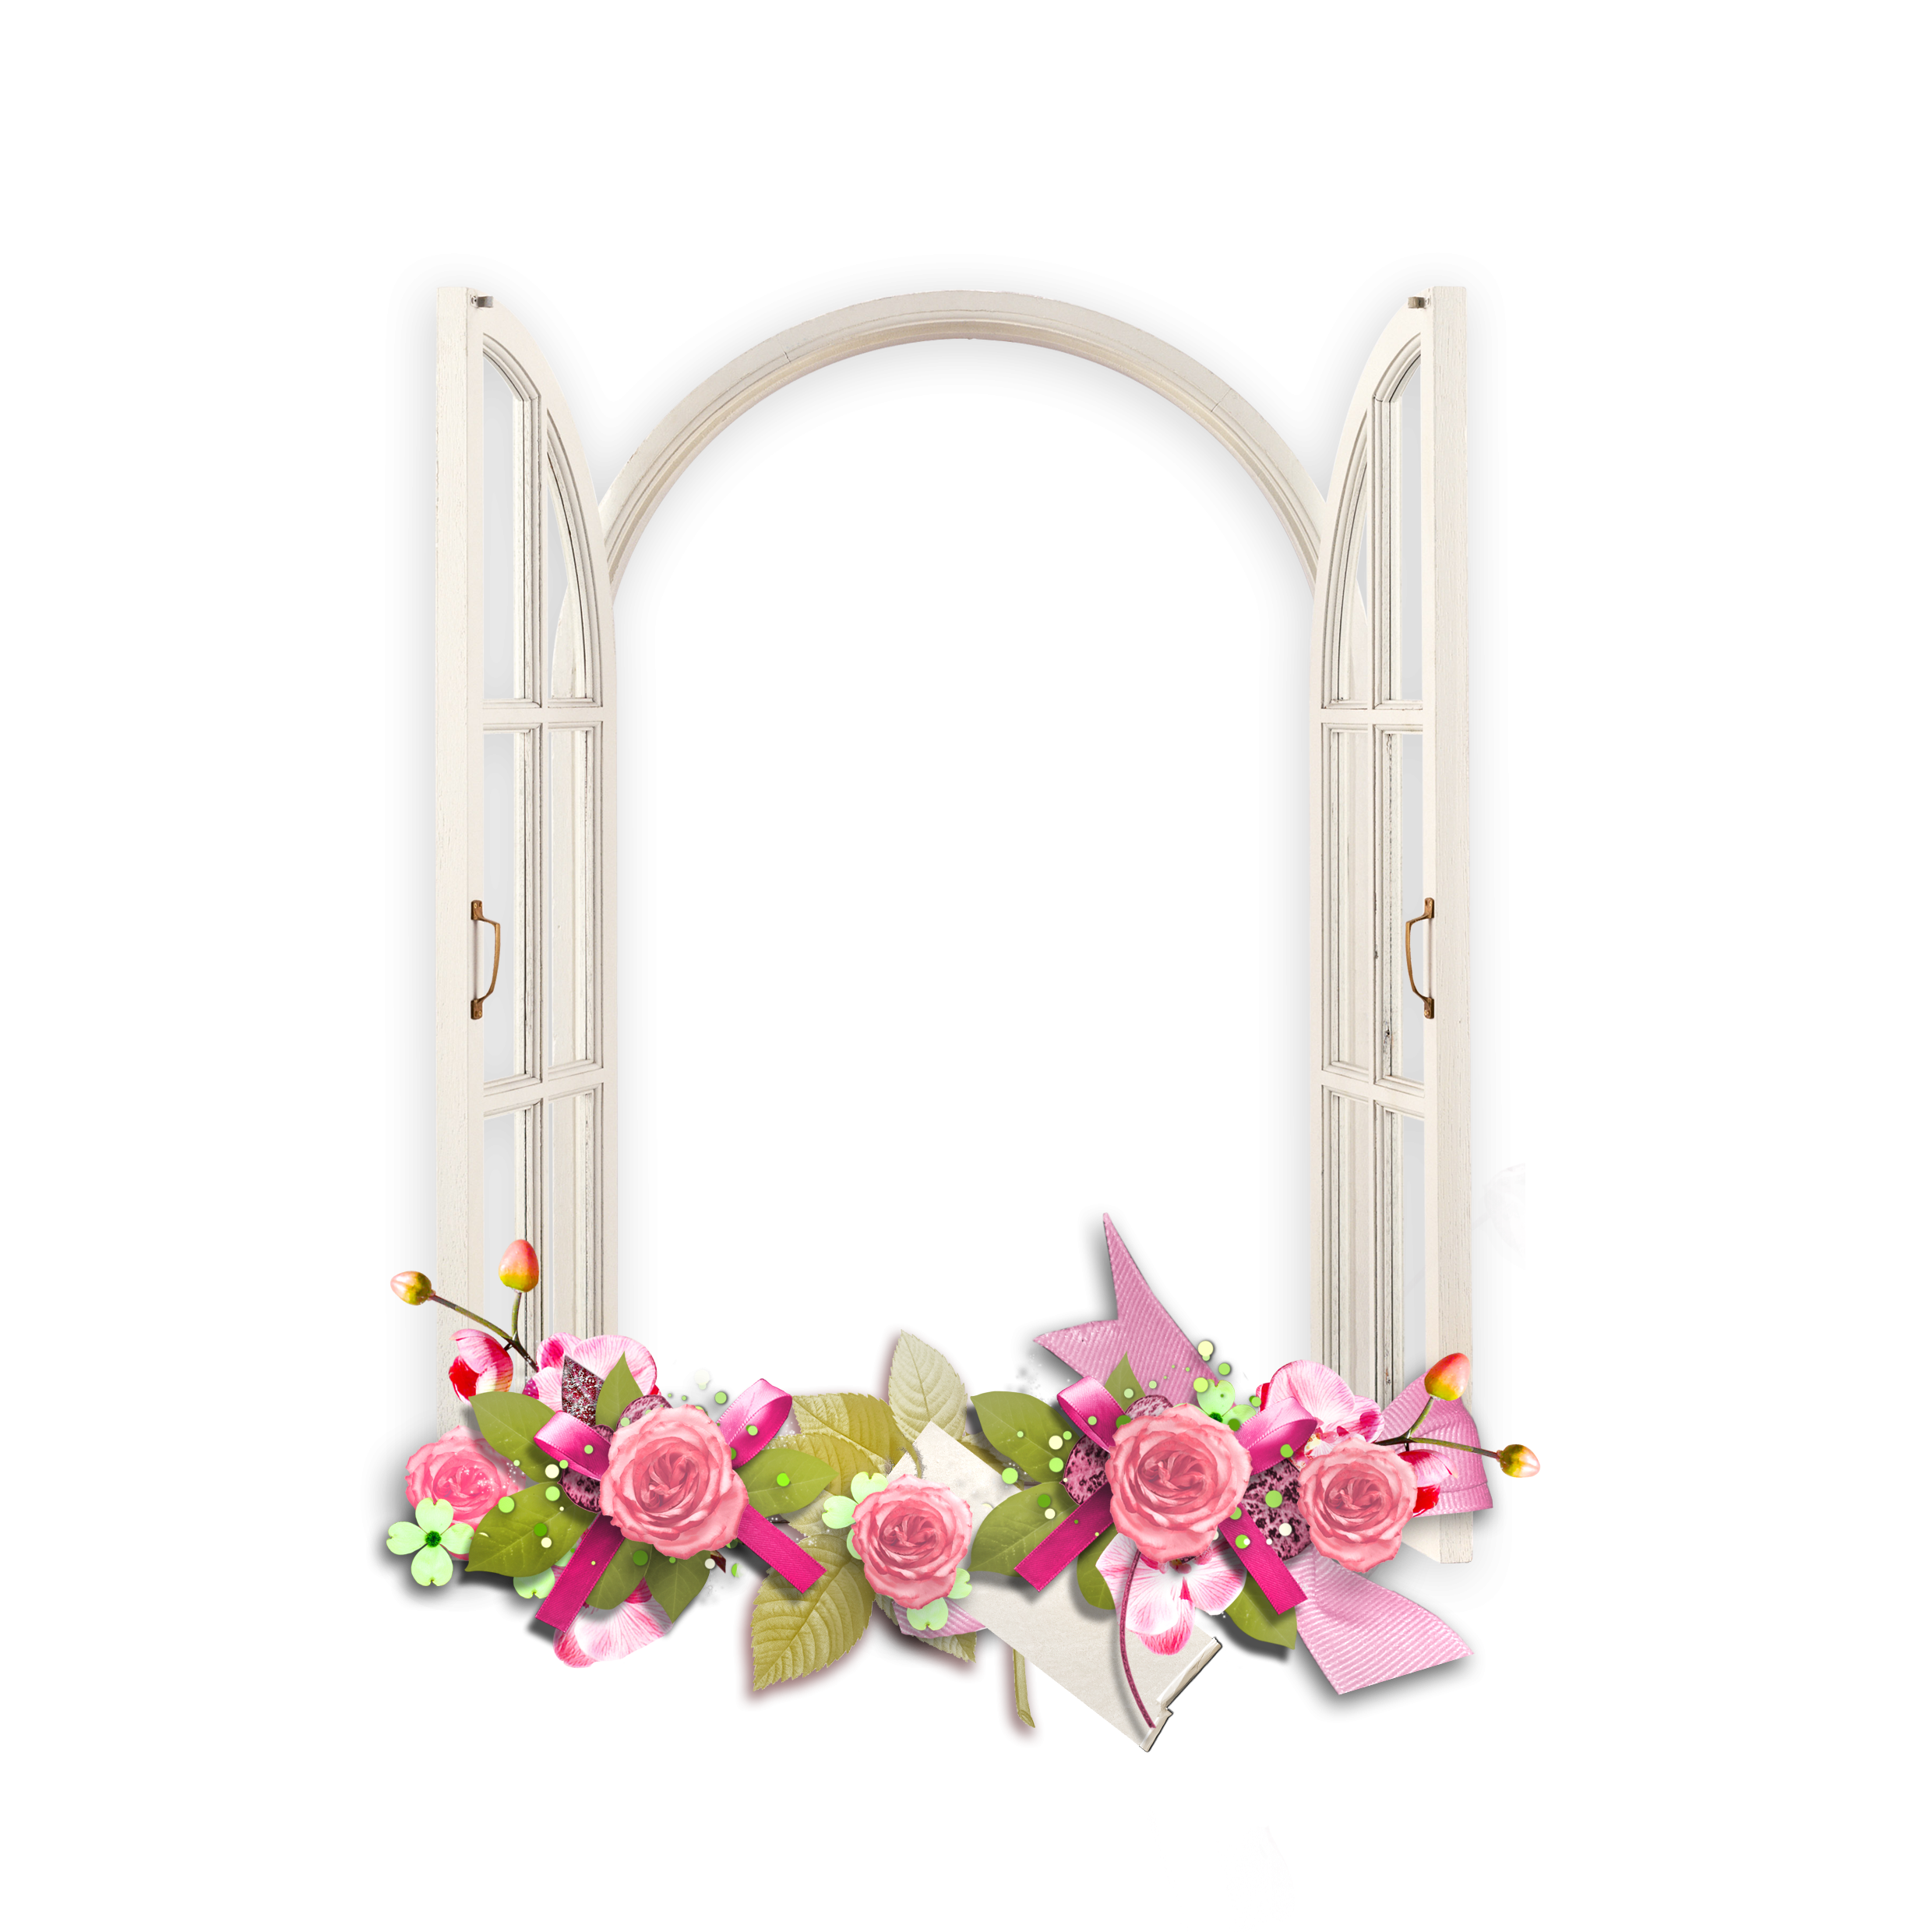 Windowframe picture frame clipart banner black and white library Window with Pink Flowers Transparent Frame | Paper Crafts ... banner black and white library